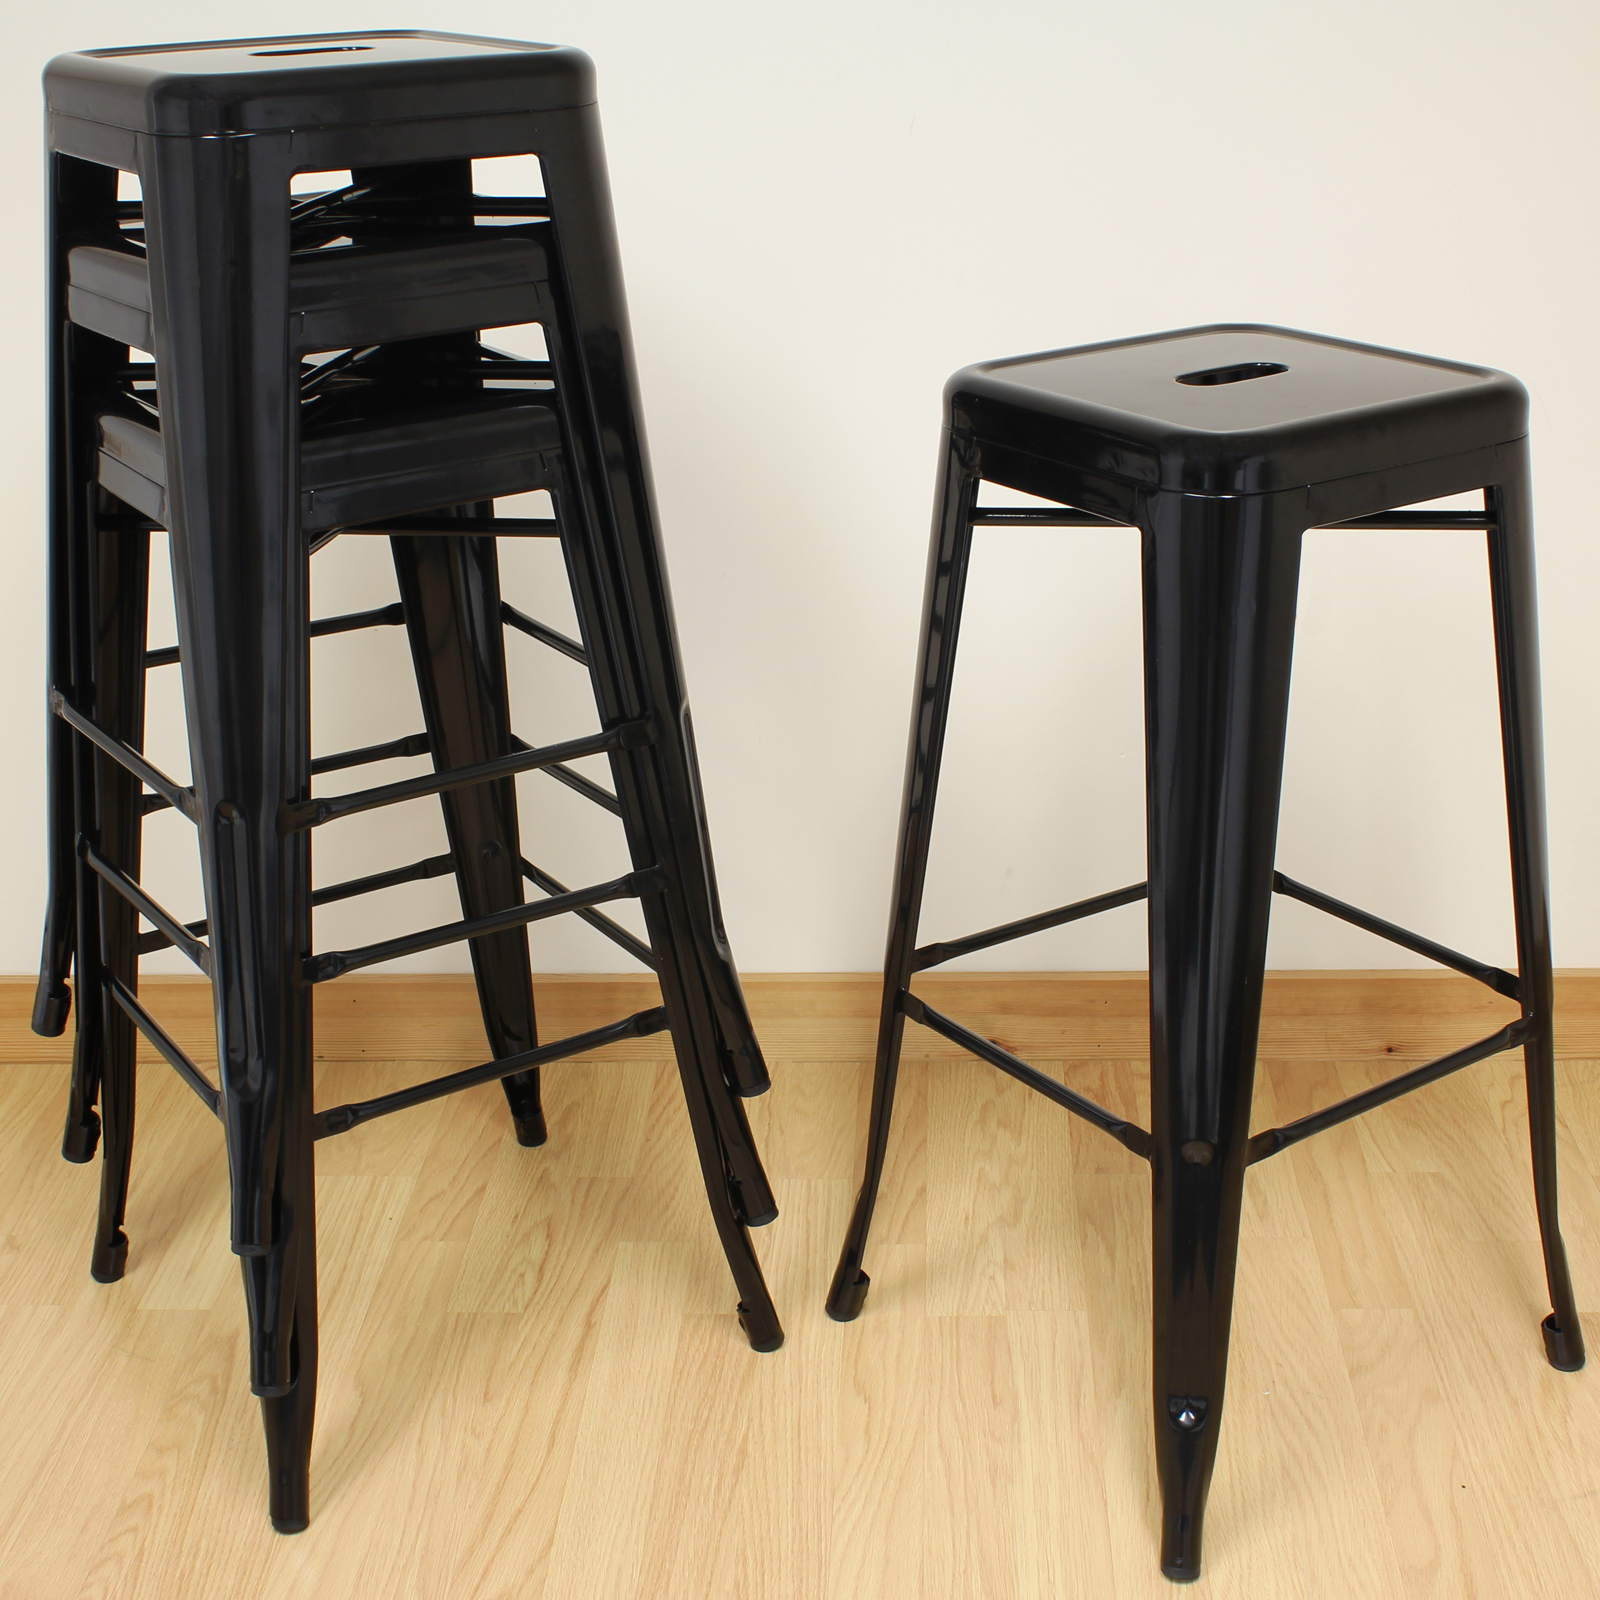 hartleys black metal high stools industrial breakfast bar cafe bistro